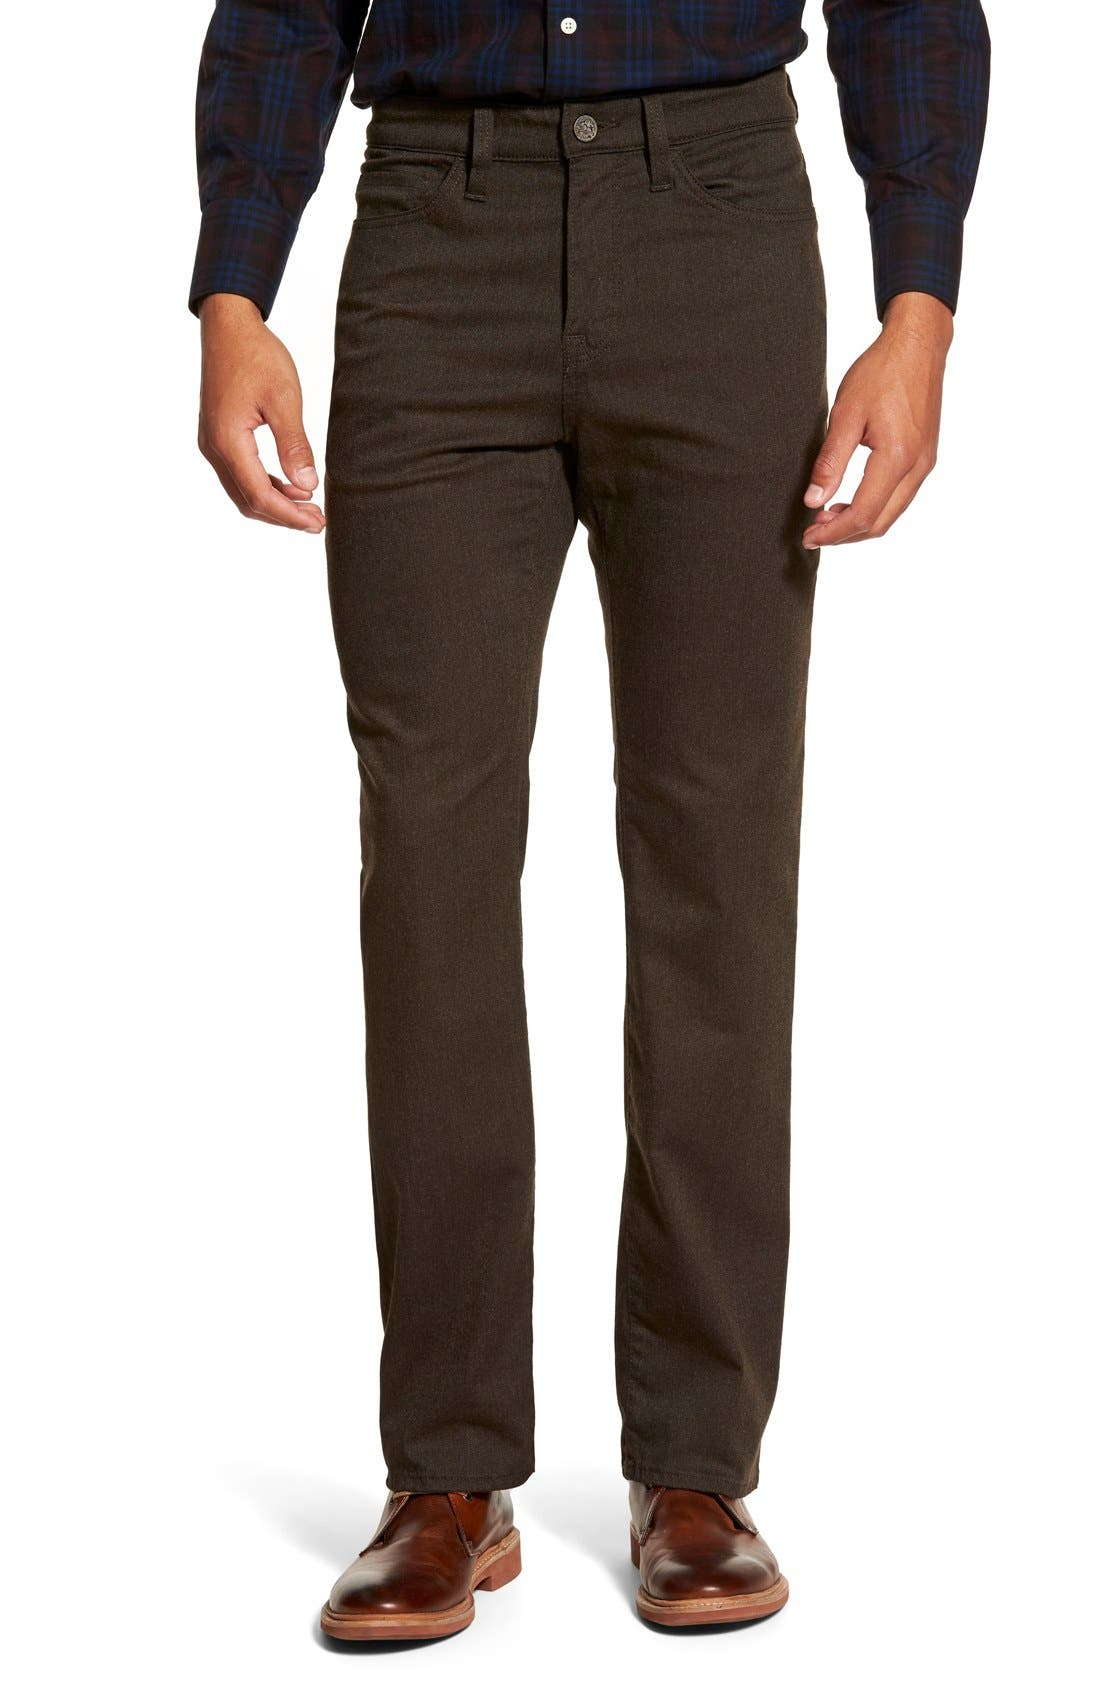 Alternate Image 1 Selected - 34 Heritage 'Charisma' Relaxed Fit Jeans (Mocca Luxe)